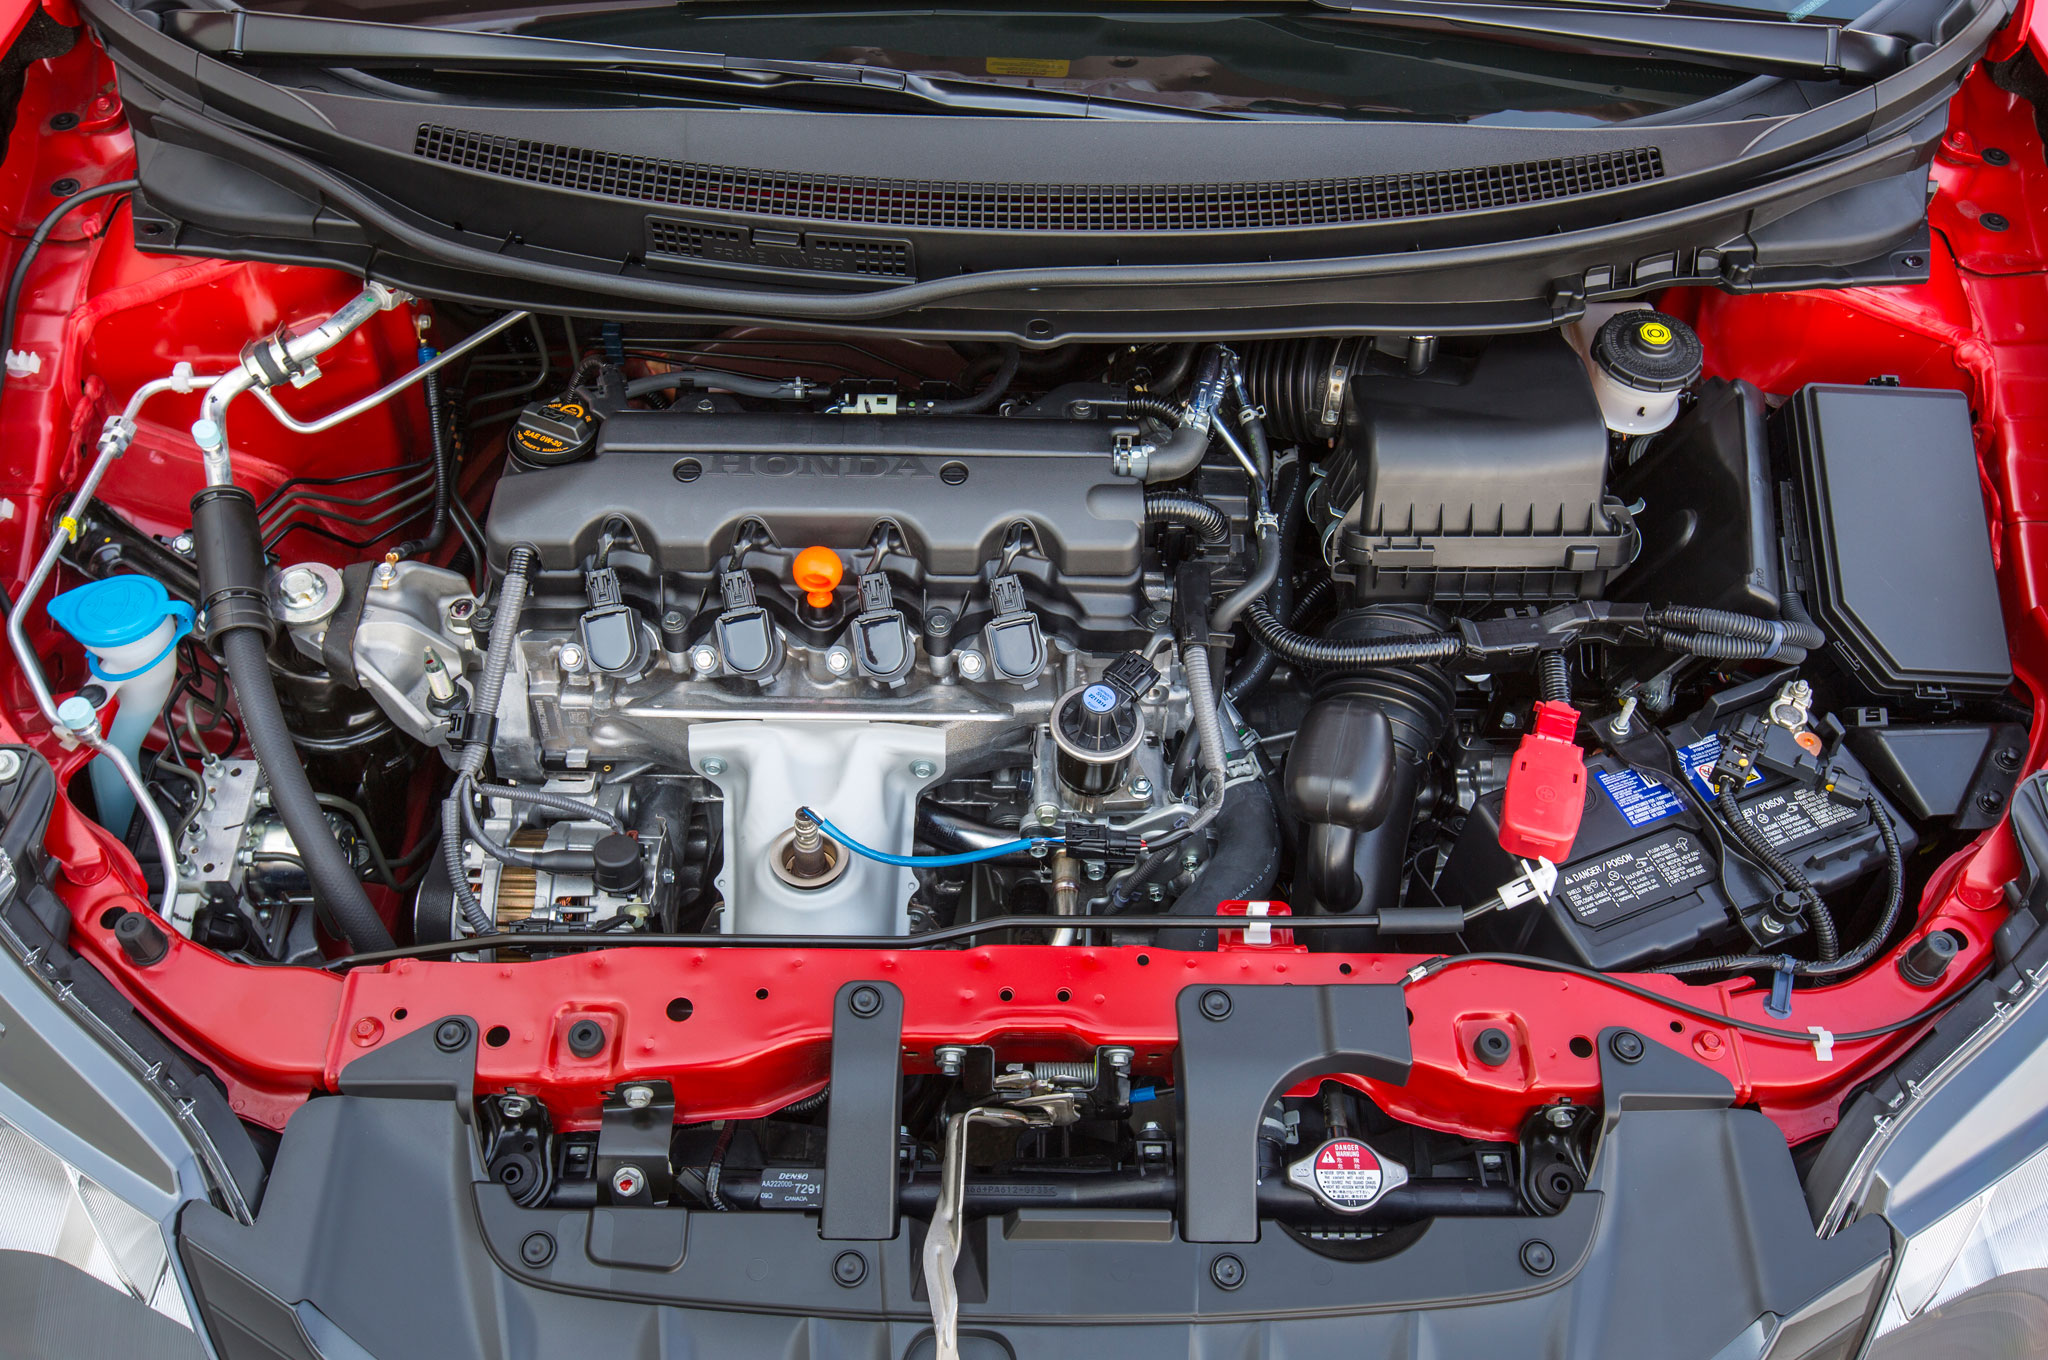 an examination of the thermodynamics of the new 2016 15l honda civic engine Honda introduces 280-hp turbo 20l i-4 engine in civic type r 2017 honda civic 4-door hatchback new york auto show motor trend on demand.